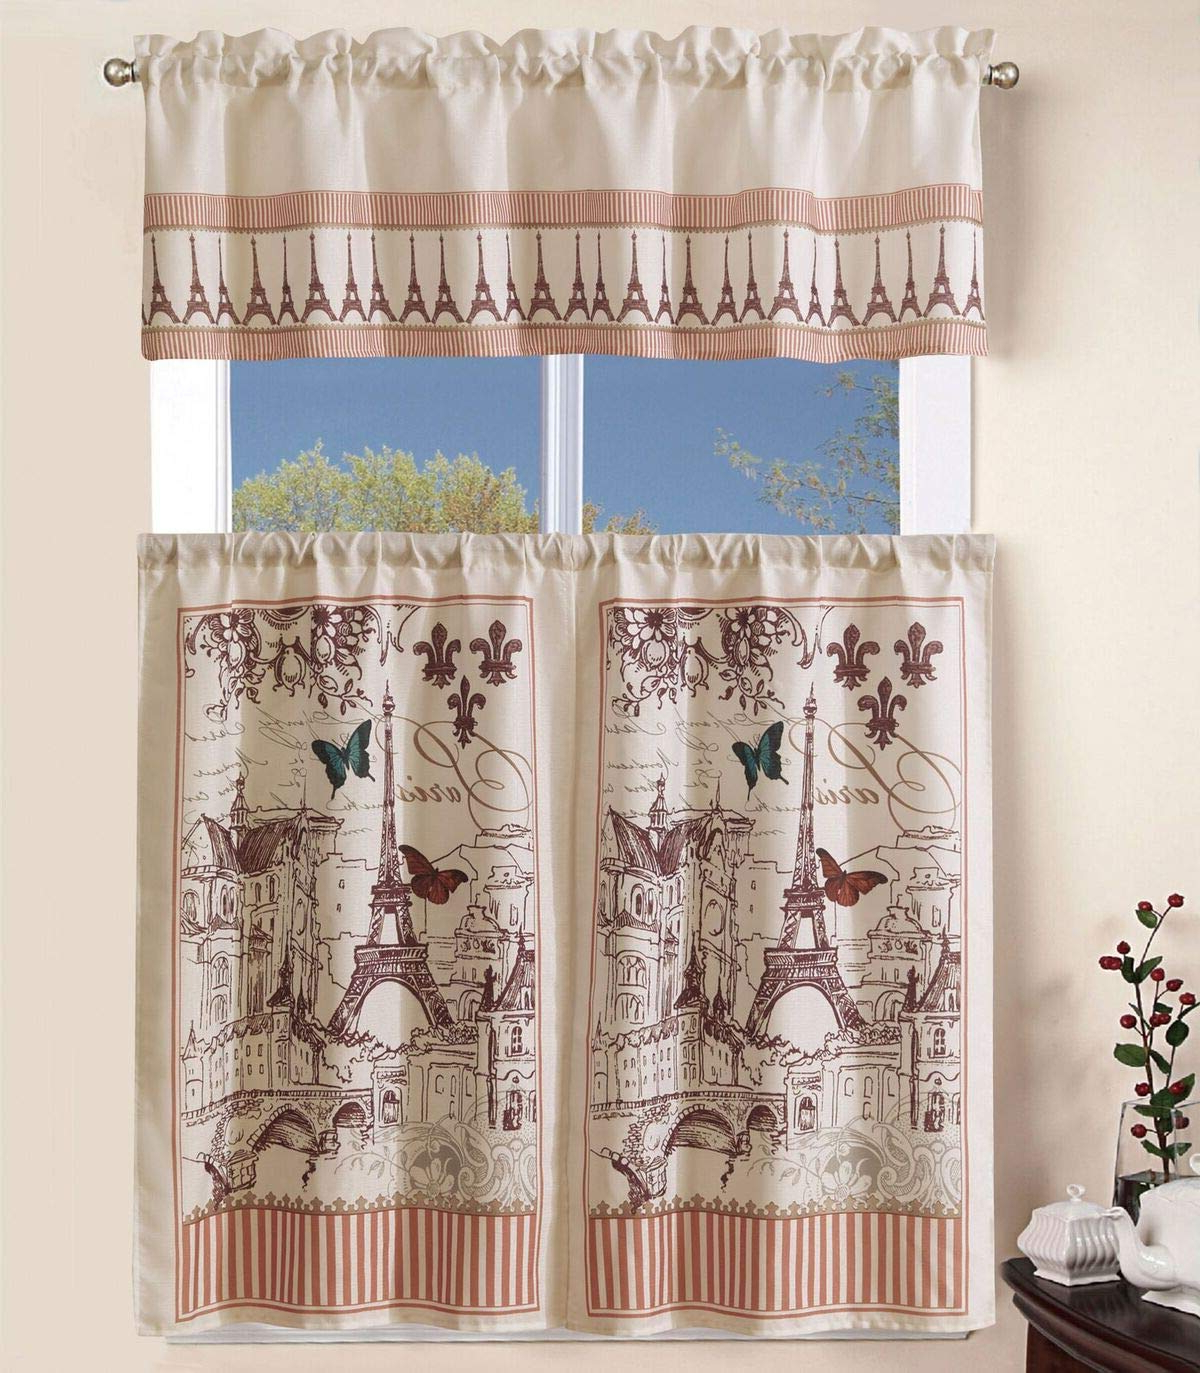 "Superior Home 3 Piece Kitchen Curtain Linen Set With 2 Tiers 27"" W (Total  Width 54"") X 36"" L And 1 Tailored Valance 54"" W X 15"" L, France Paris  Eiffel For Well Known Solid Microfiber 3 Piece Kitchen Curtain Valance And Tiers Sets (View 17 of 20)"